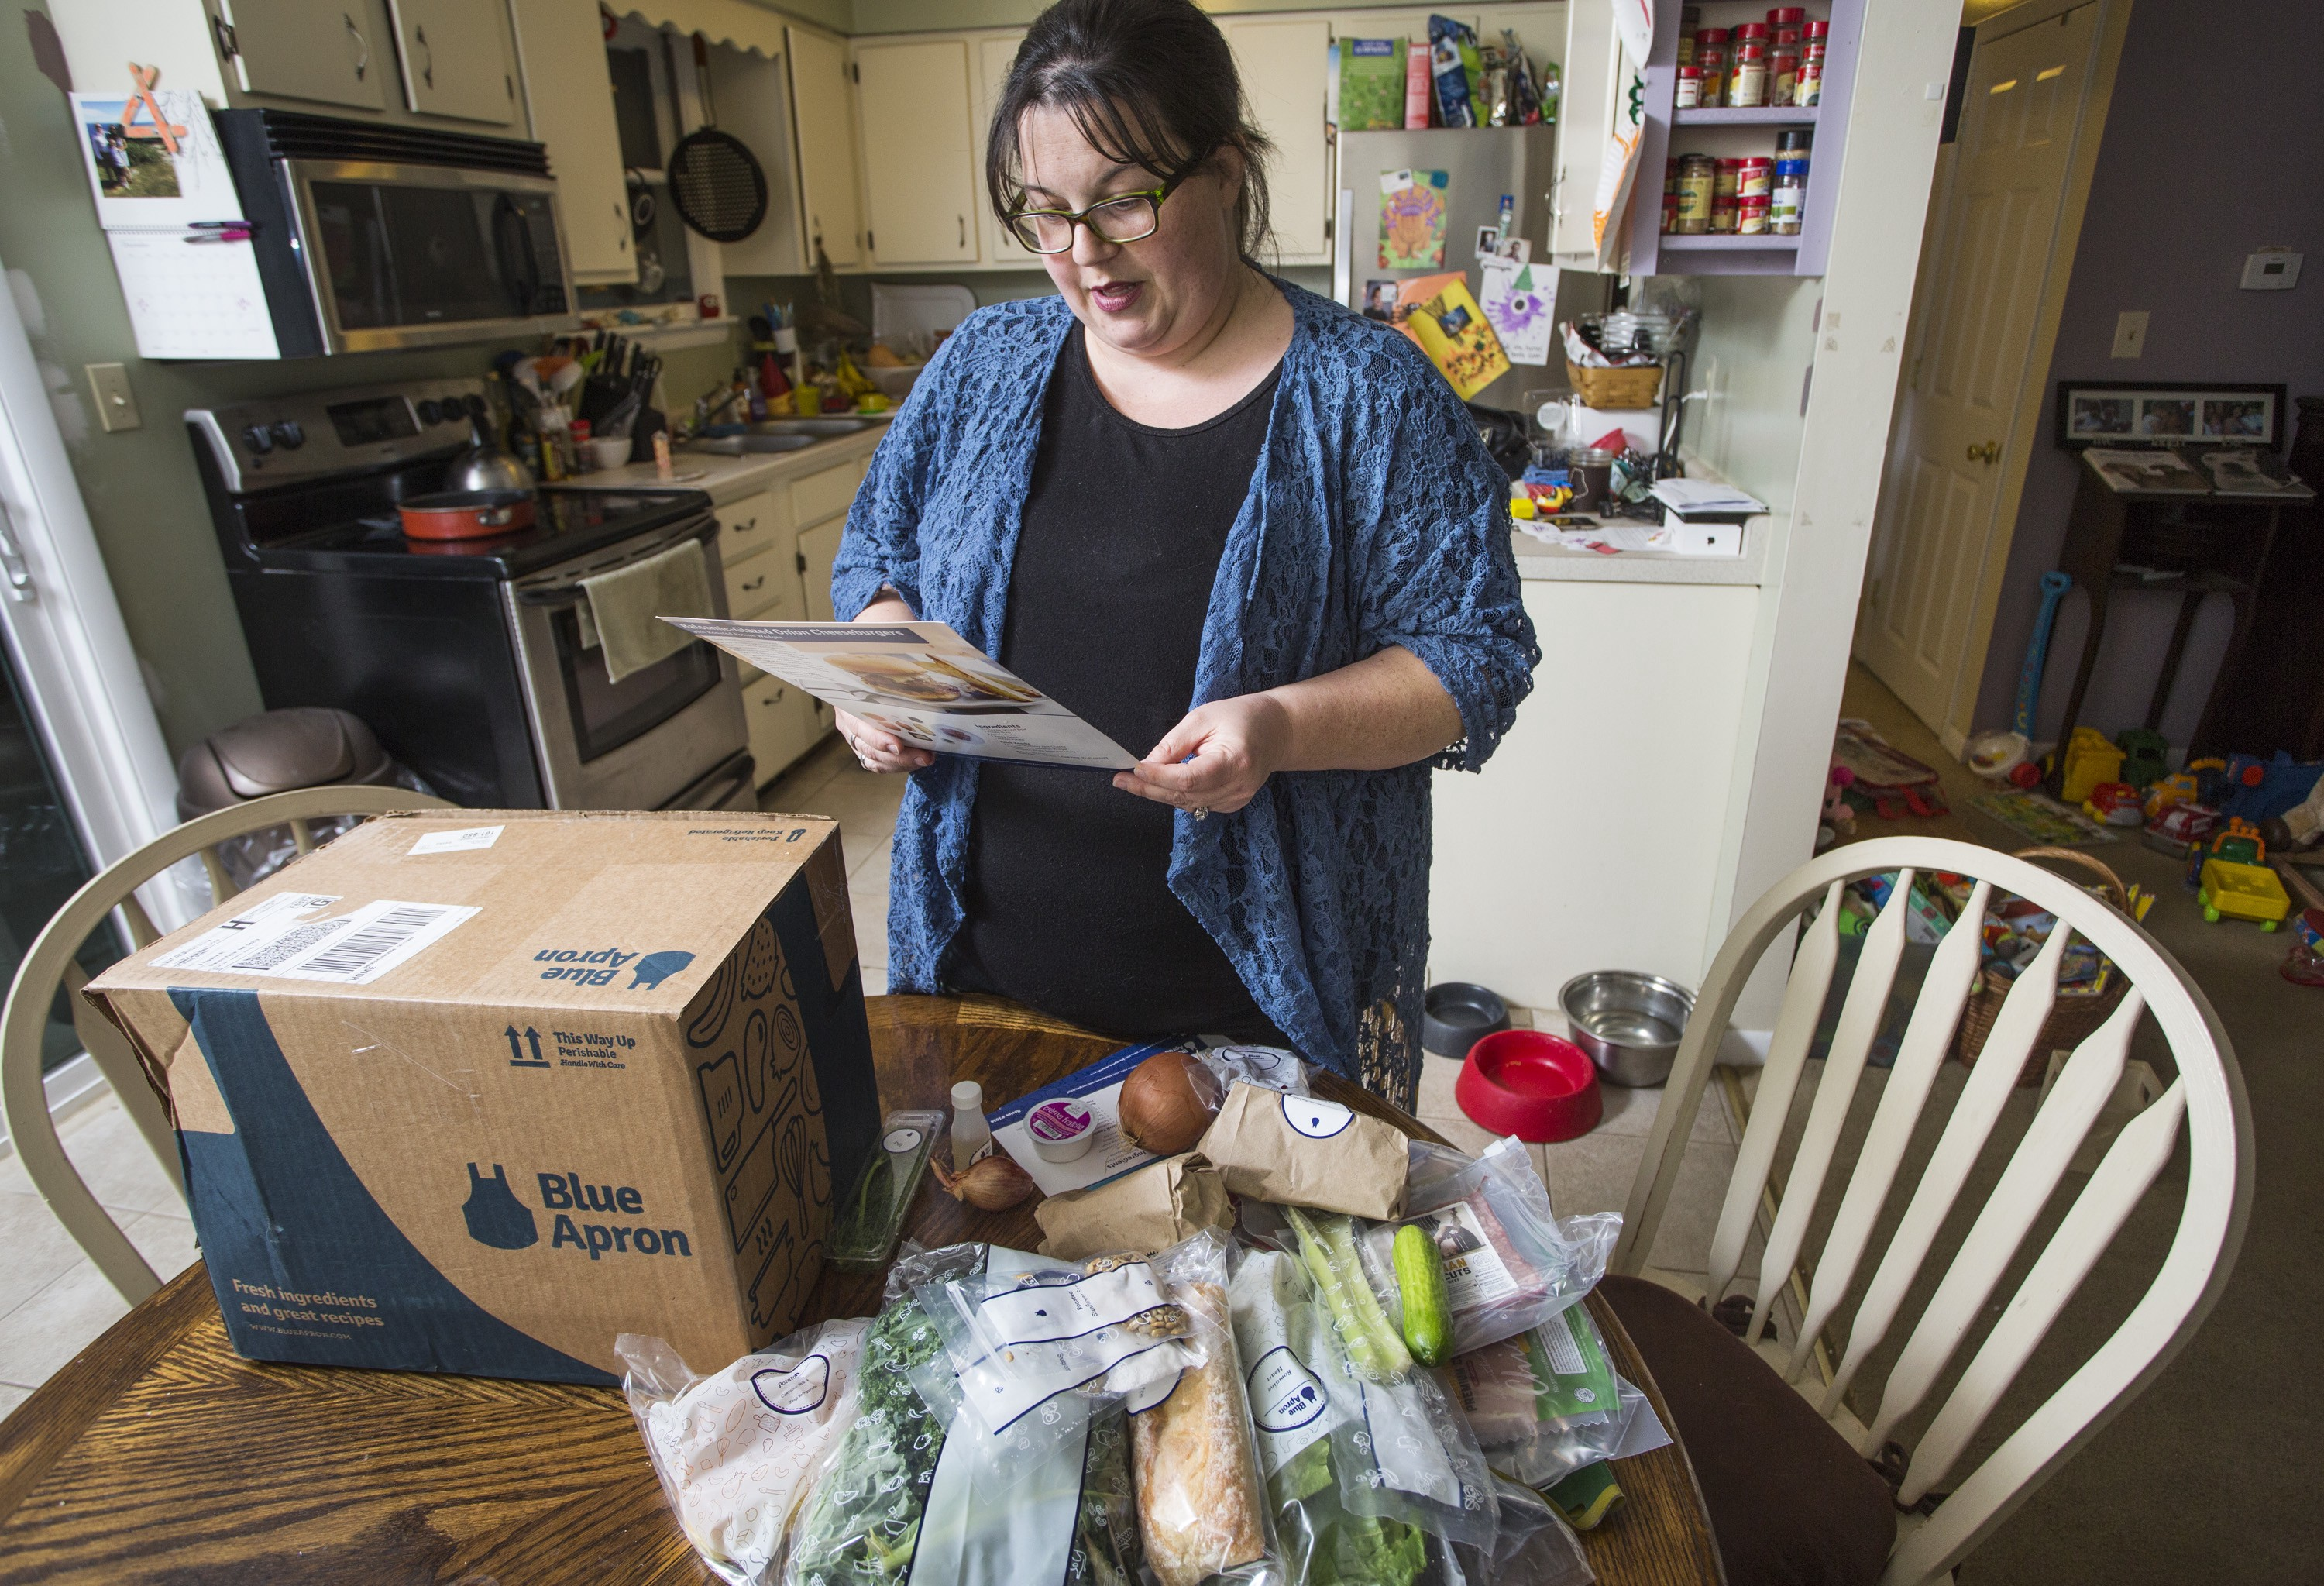 Emily Griffin reads a recipe for a Blue Apron meal while unpacking her box at her Lisbon Falls home.